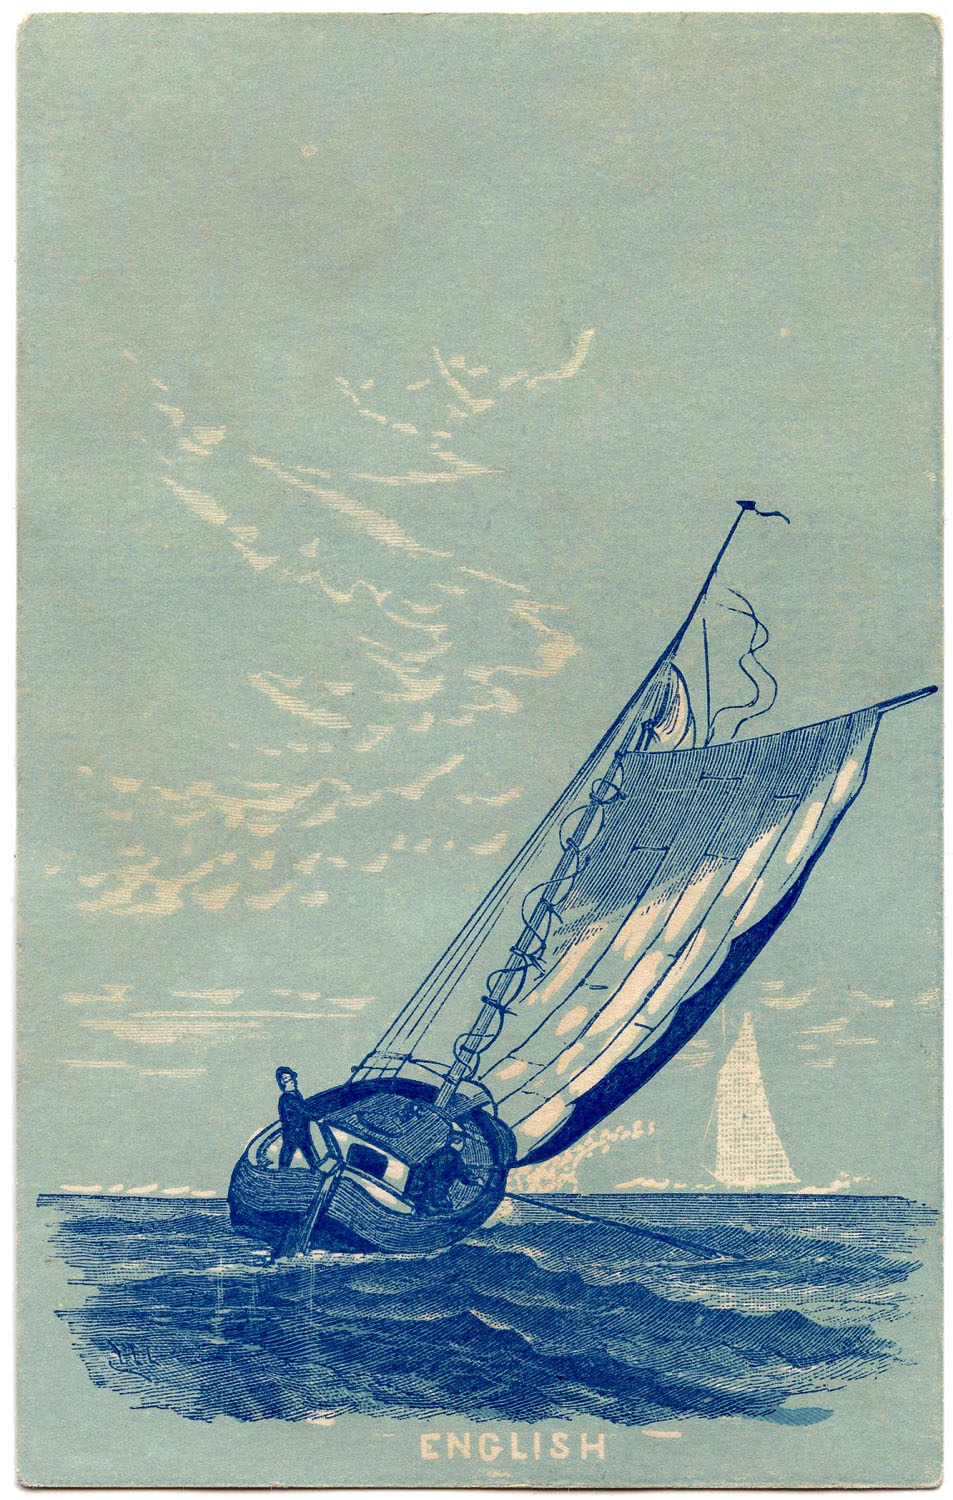 Royalty Free Images - Engravings - Ships - The Graphics Fairy: thegraphicsfairy.com/royalty-free-images-engravings-ships